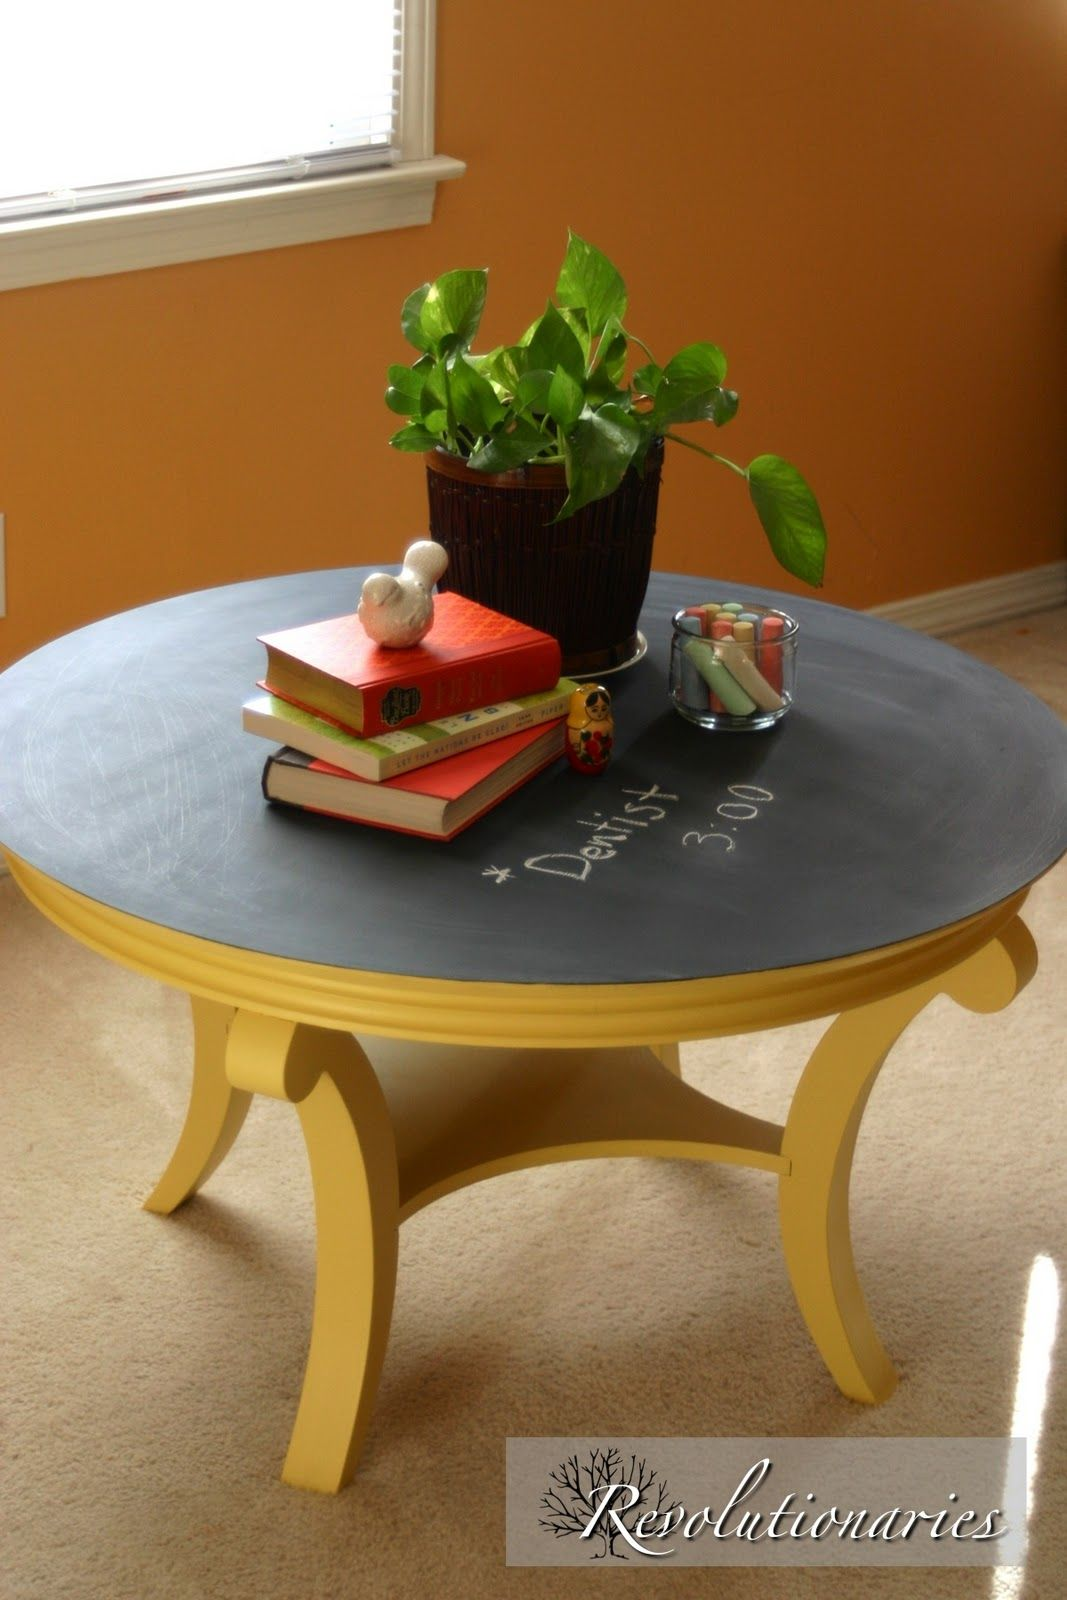 Round coffee table with chalkboard on top